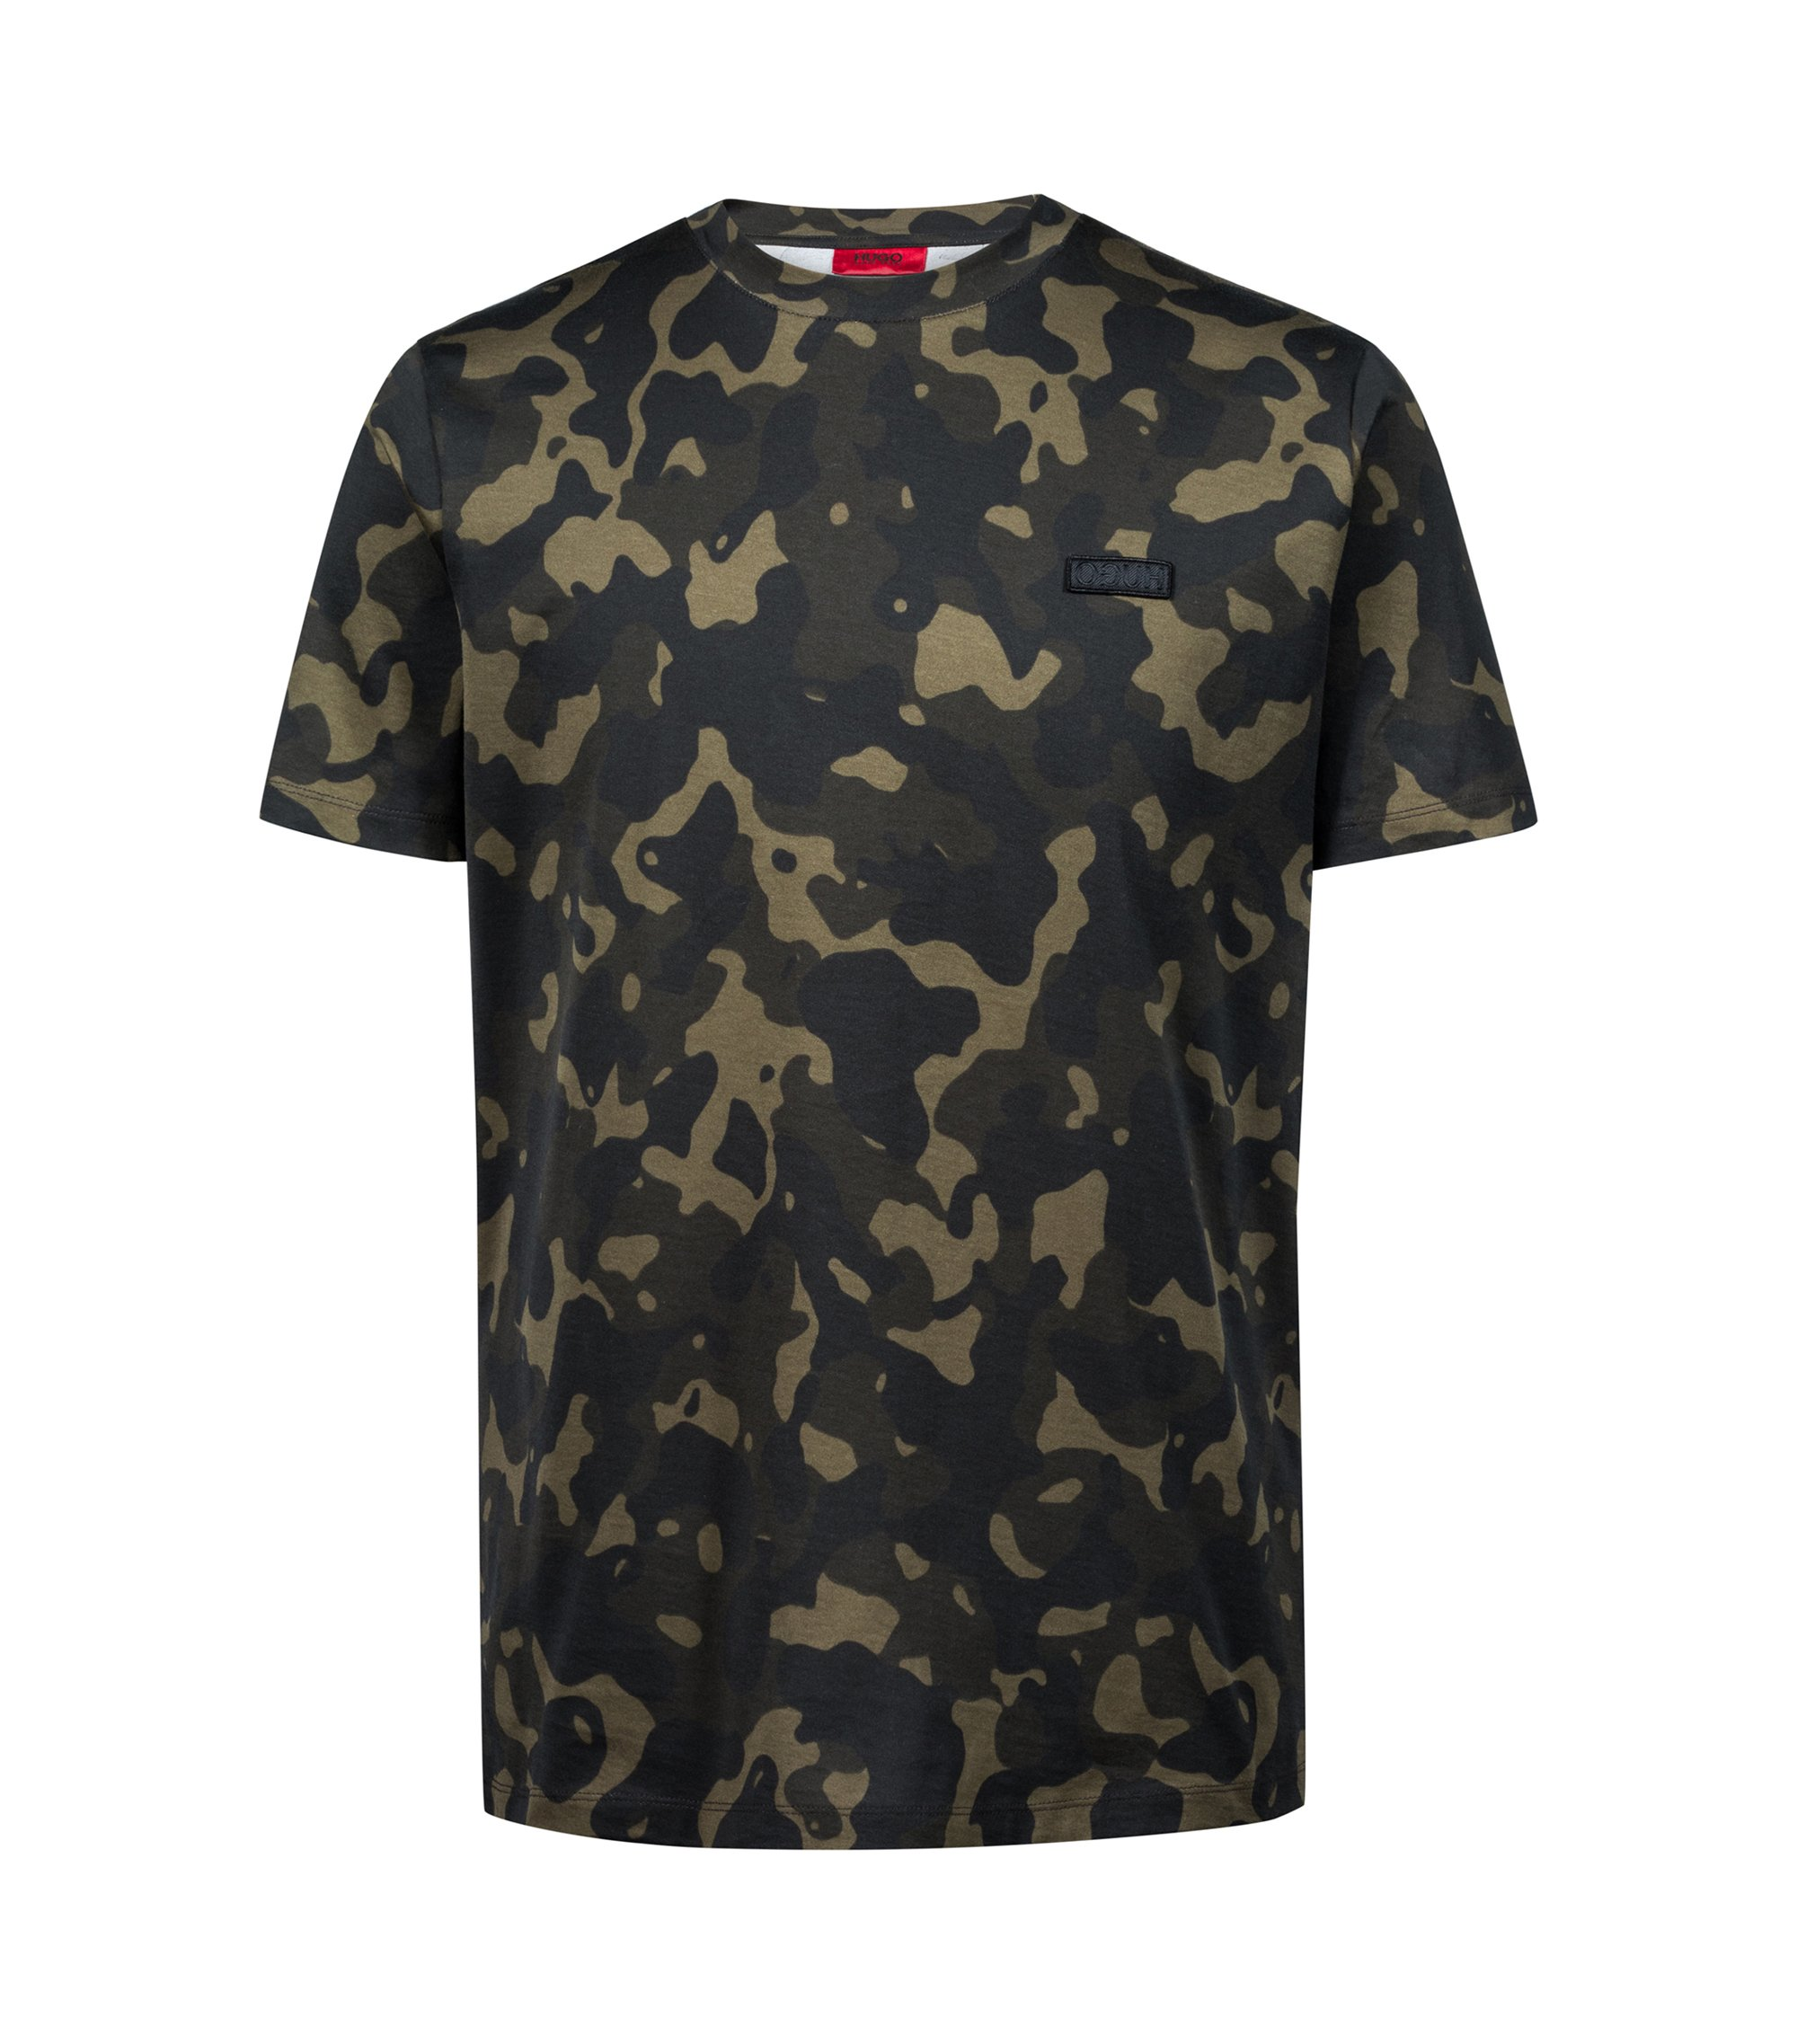 T-shirt relaxed fit in puro cotone con stampa camouflage, A disegni